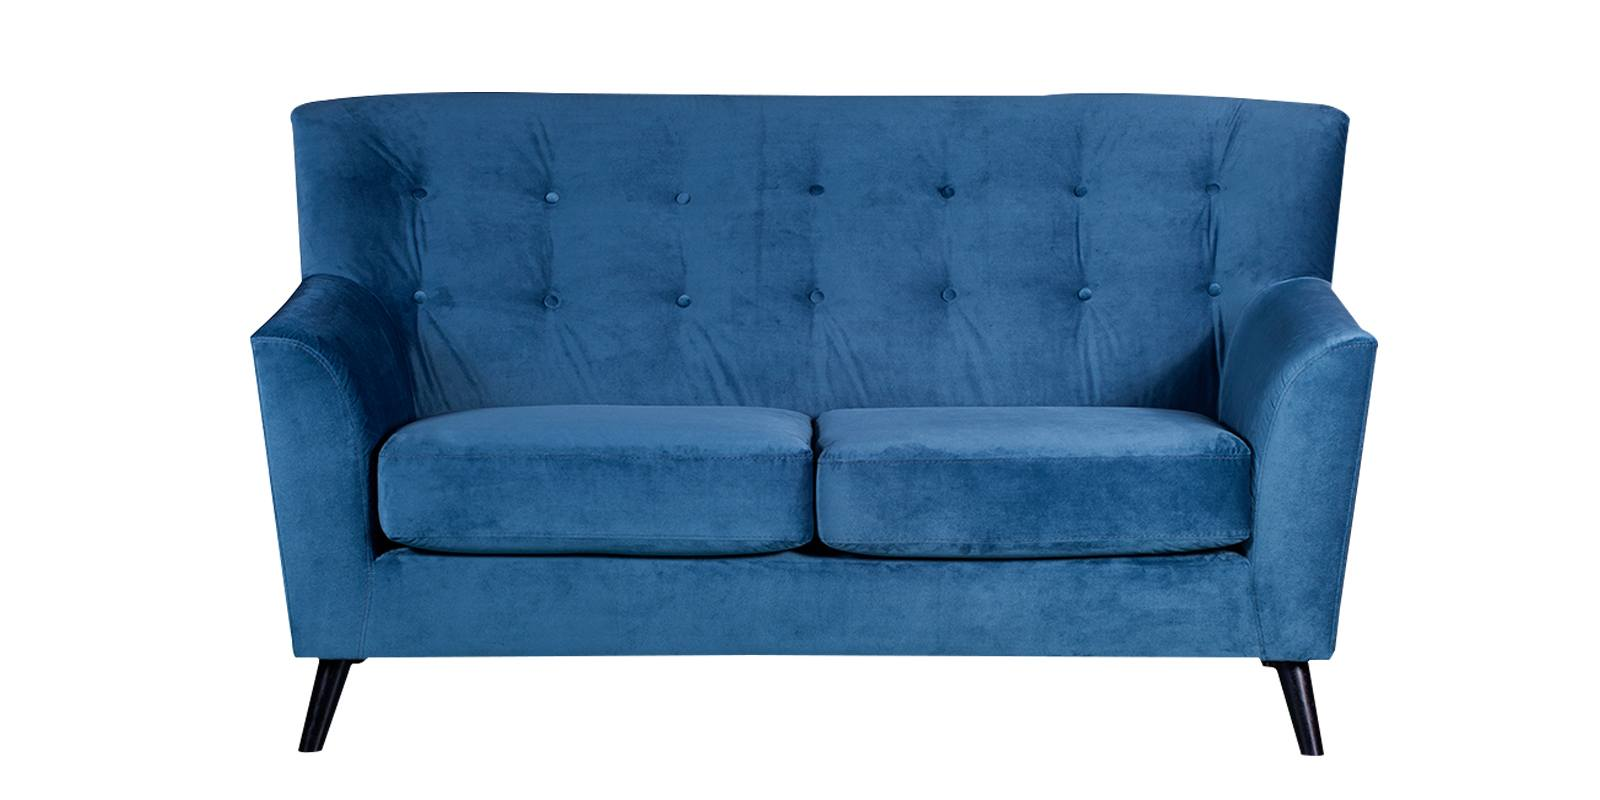 Arian Two Seater Sofa In Blue Colour | Dreamzz Furniture ...